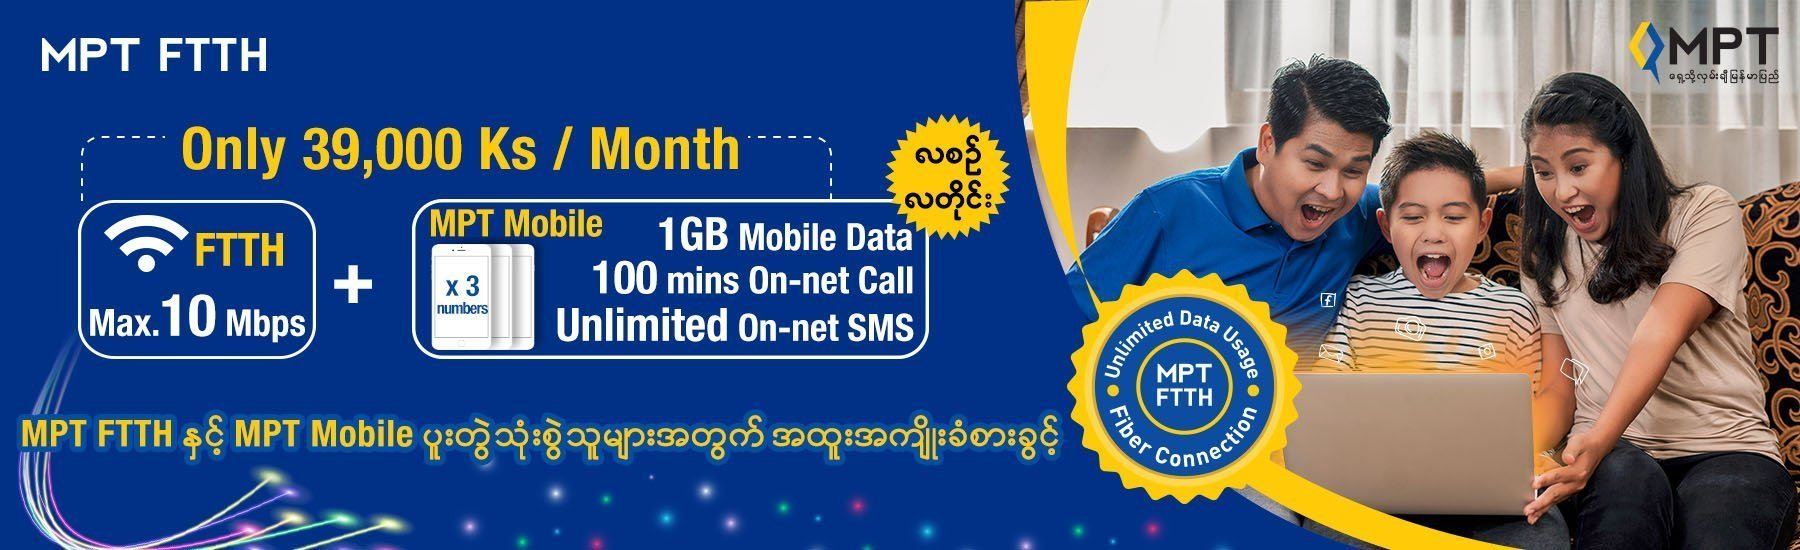 MPT launches new broadband promotion